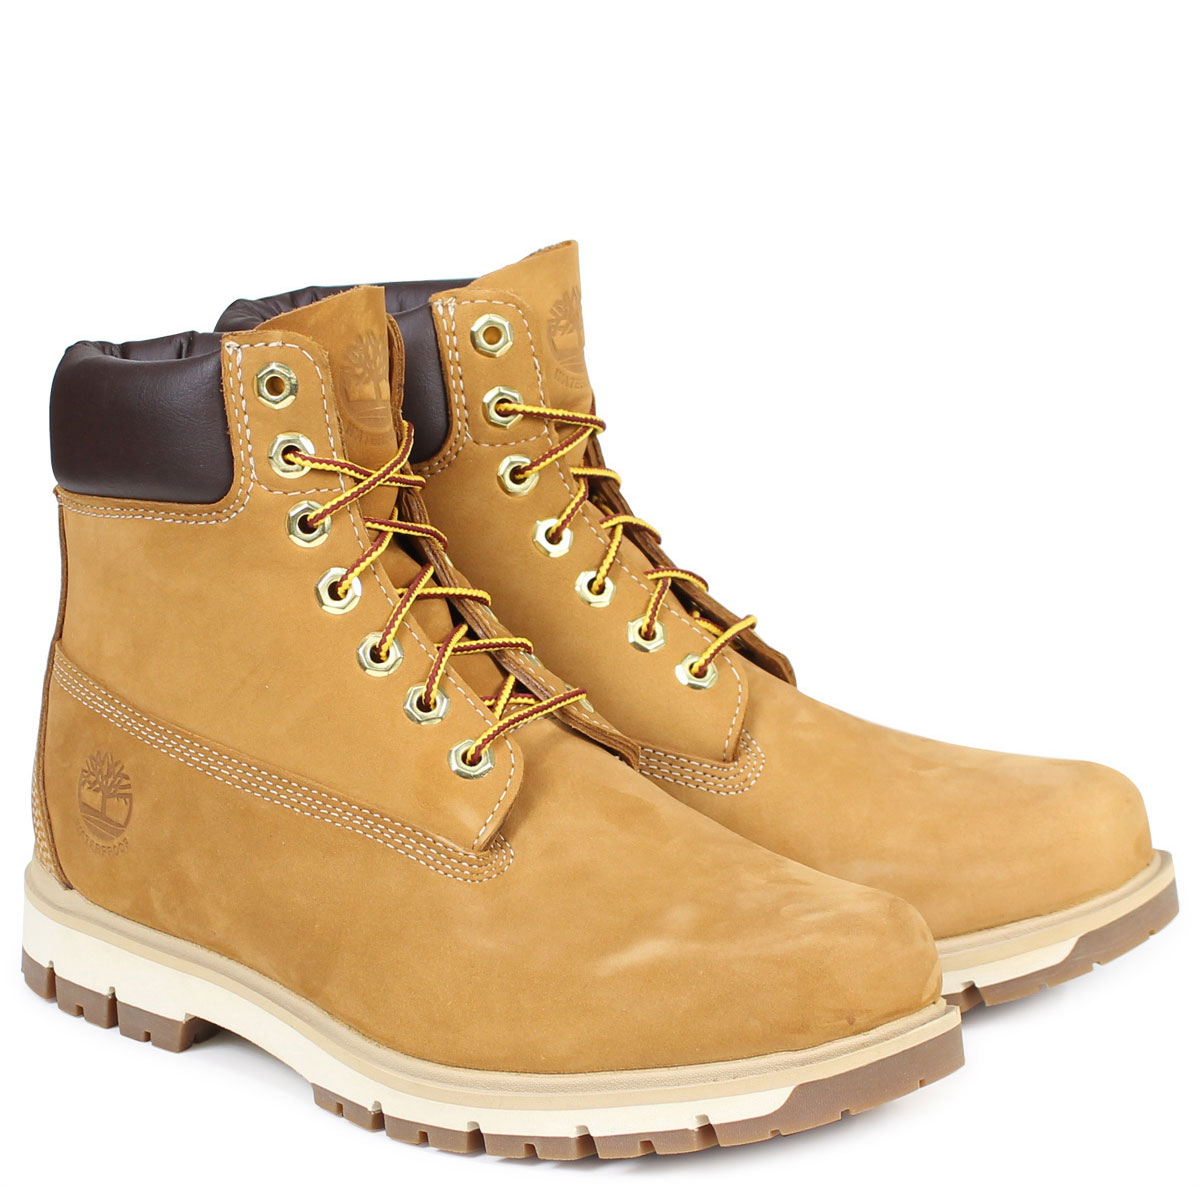 6 inches of Timberland RADFORD 6INCH PREMIUM BOOT Timberland boots men A1JHF waterproof W Wise waterproofing brown [187]